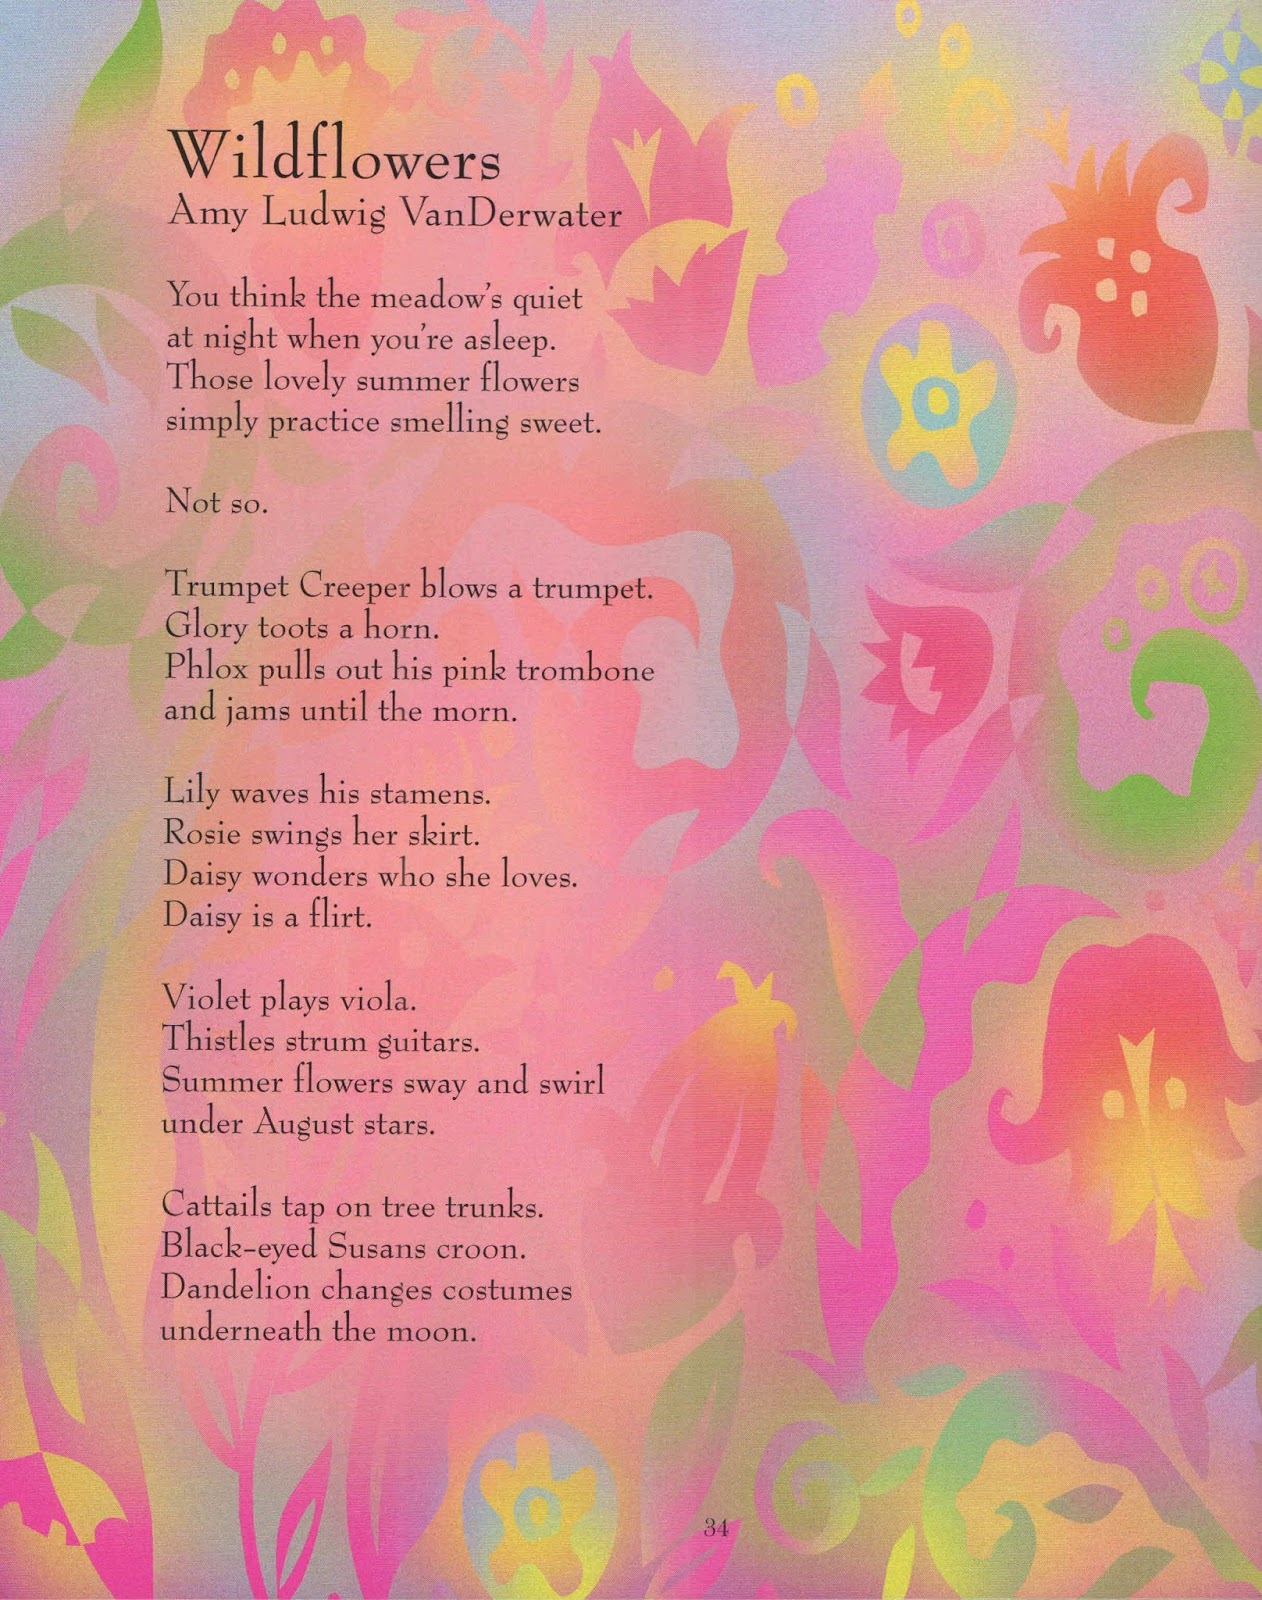 The poem farm happy wild blogiversary to my friend irene click to enlarge this image izmirmasajfo